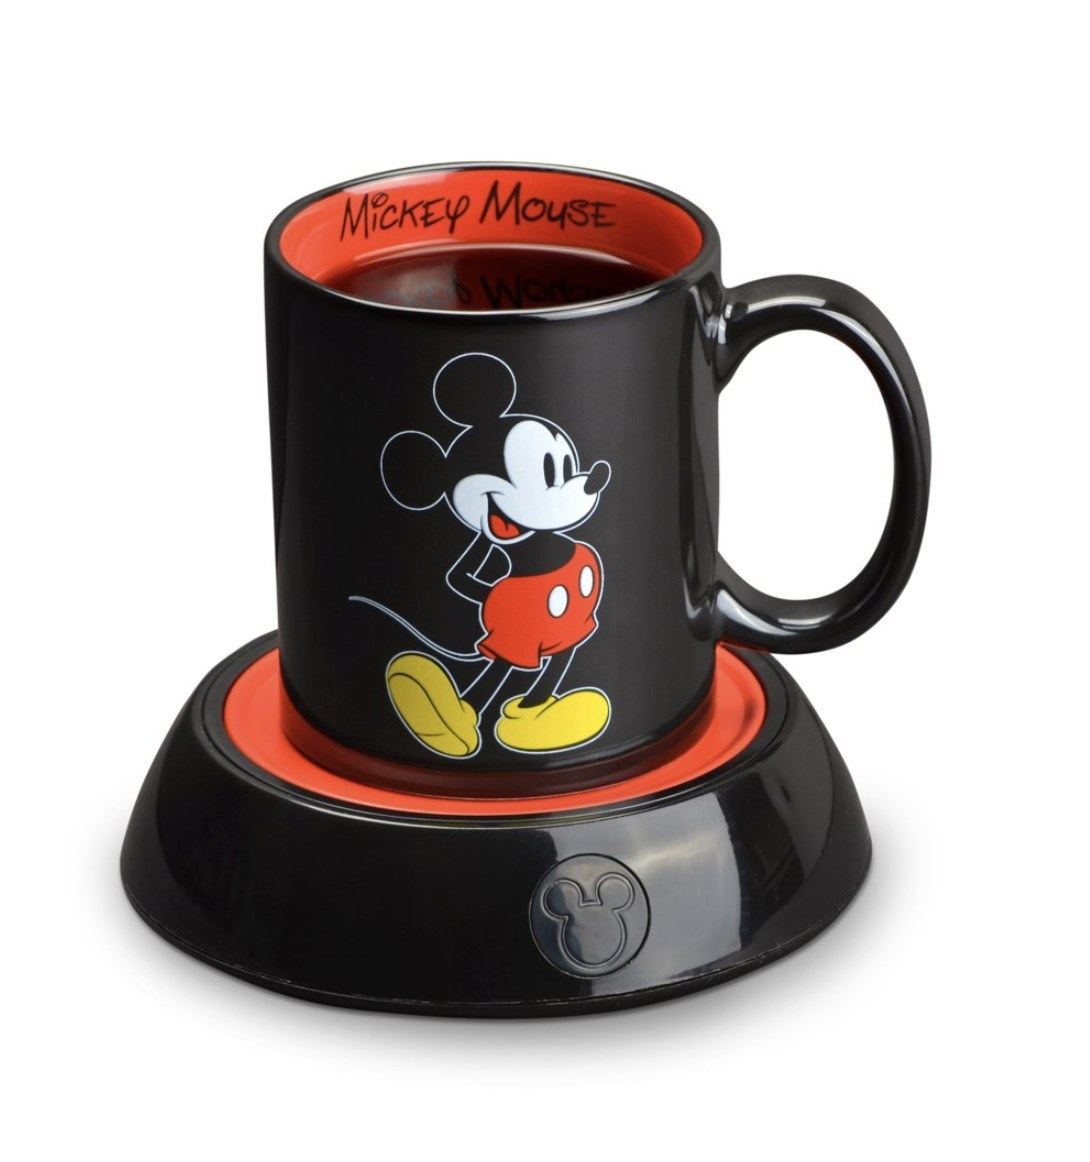 A black mug with Mickey Mouse printed on the front sitting on top of a black and red mug warmer with the mouse ears emblem